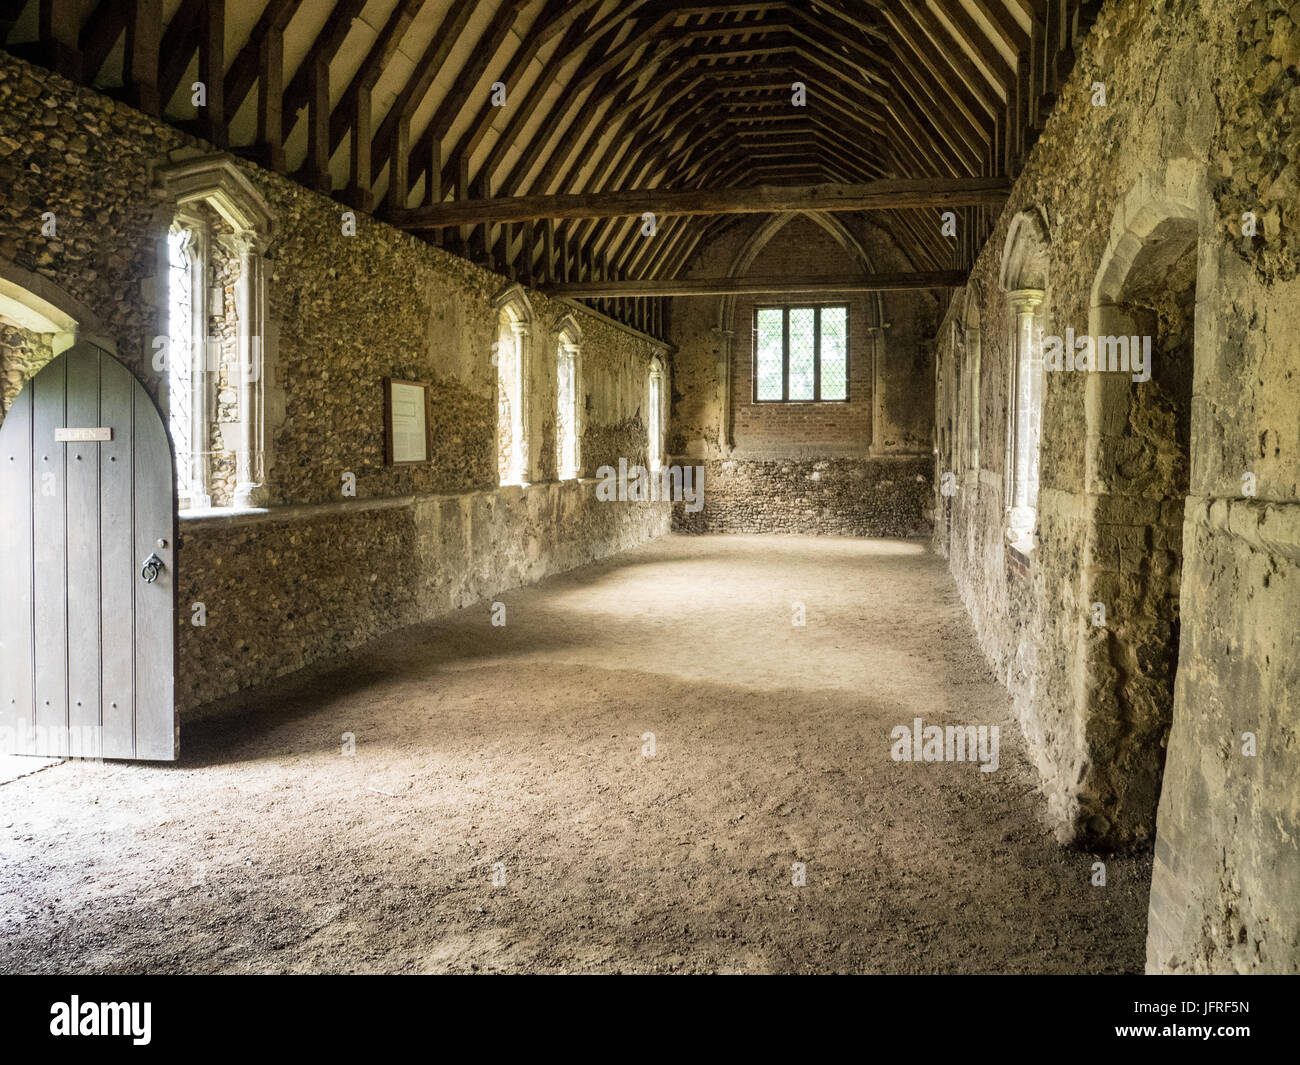 Duxford Chapel in Whittlesford, Cambridgeshire. This is a c14 Chantry Chapel that may once have been used as a leper - Stock Image